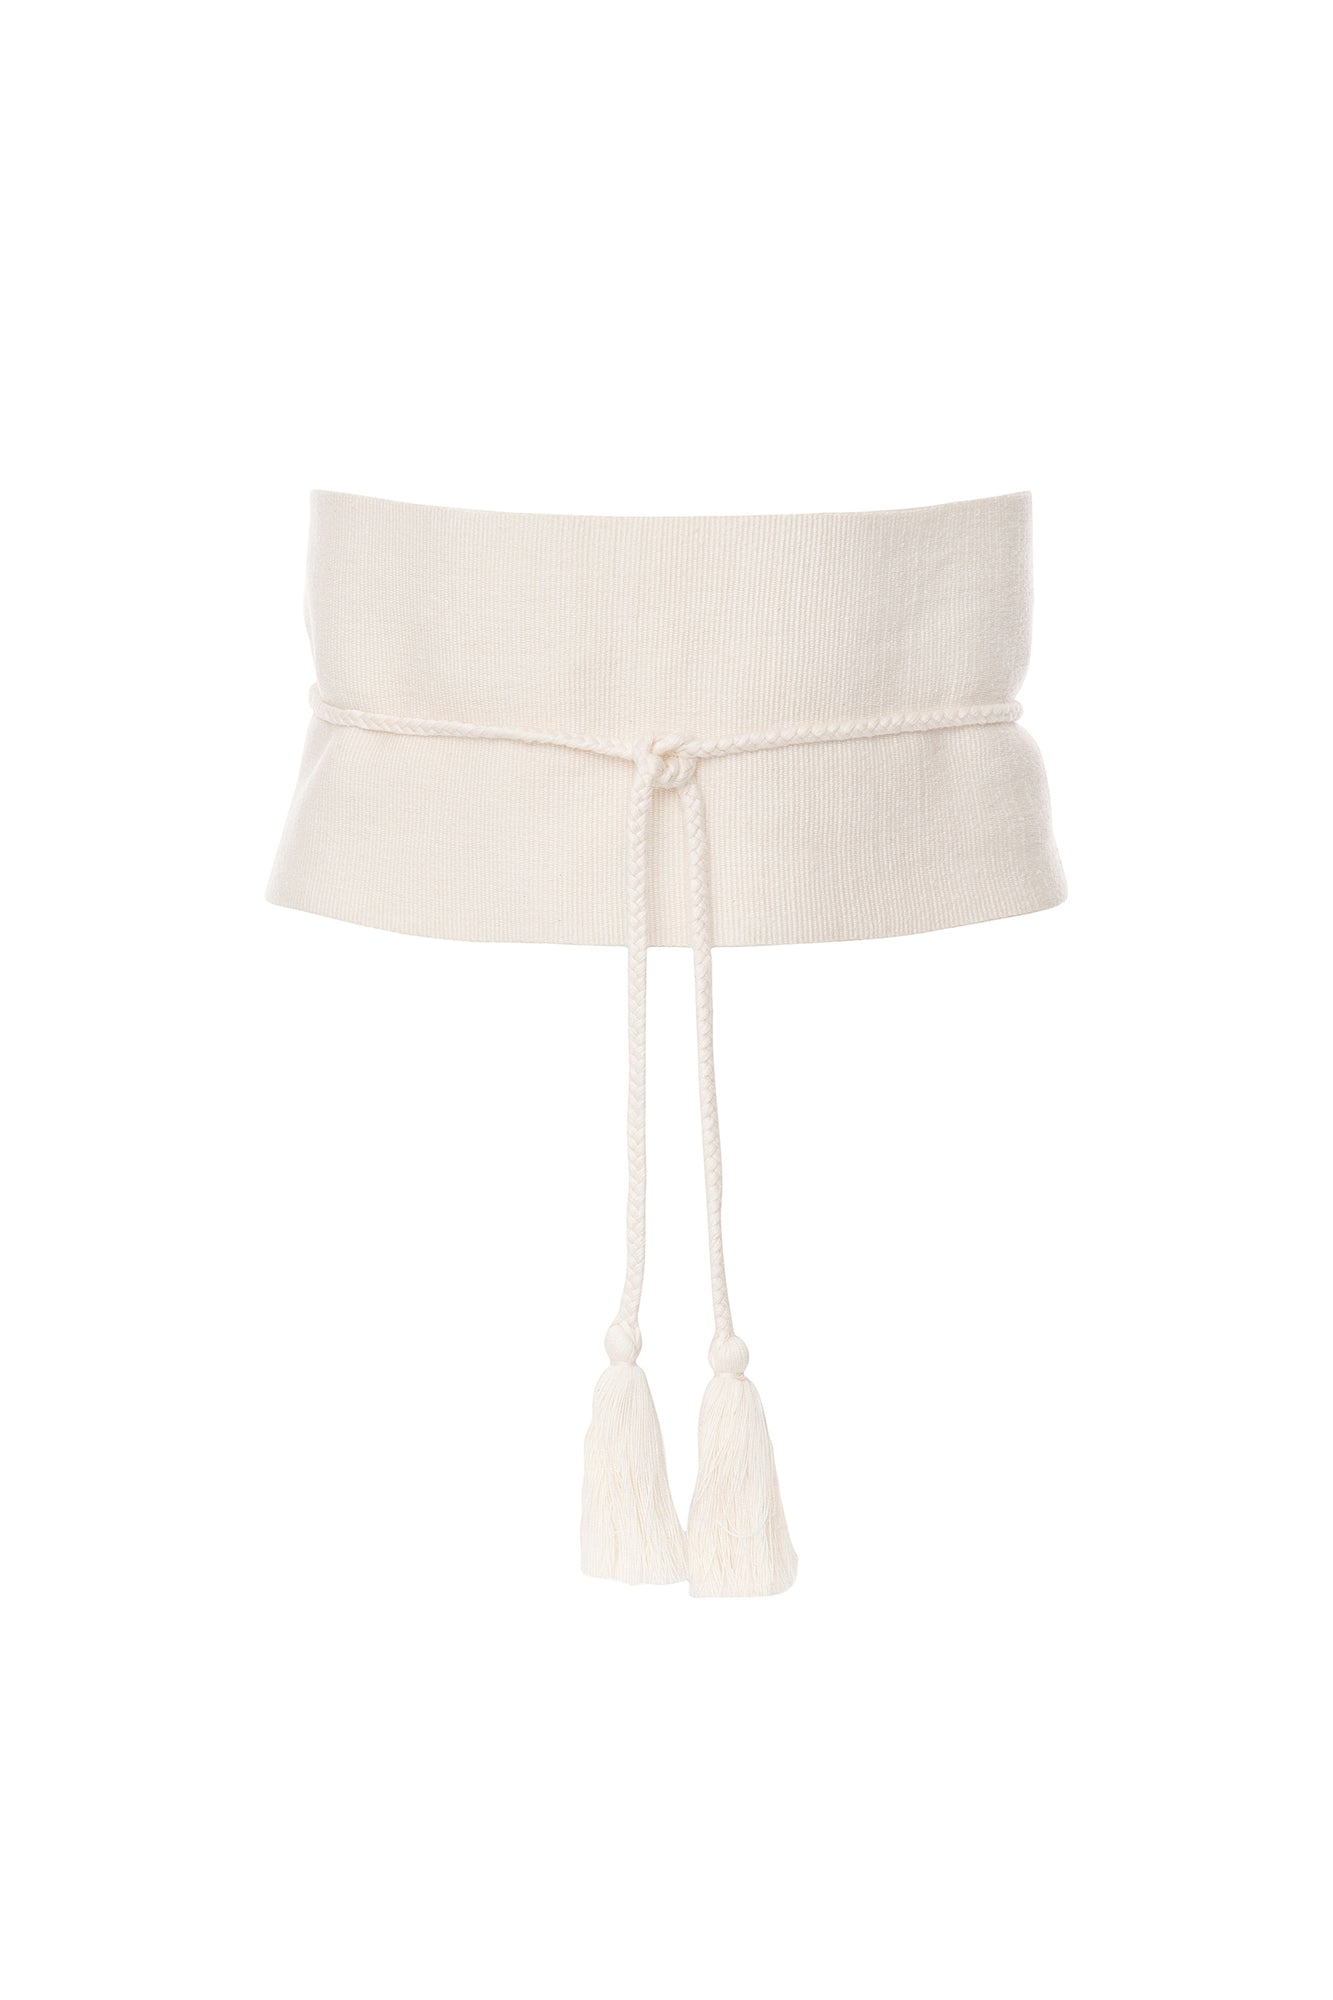 Carolina K Carmen Belt Cream One Size